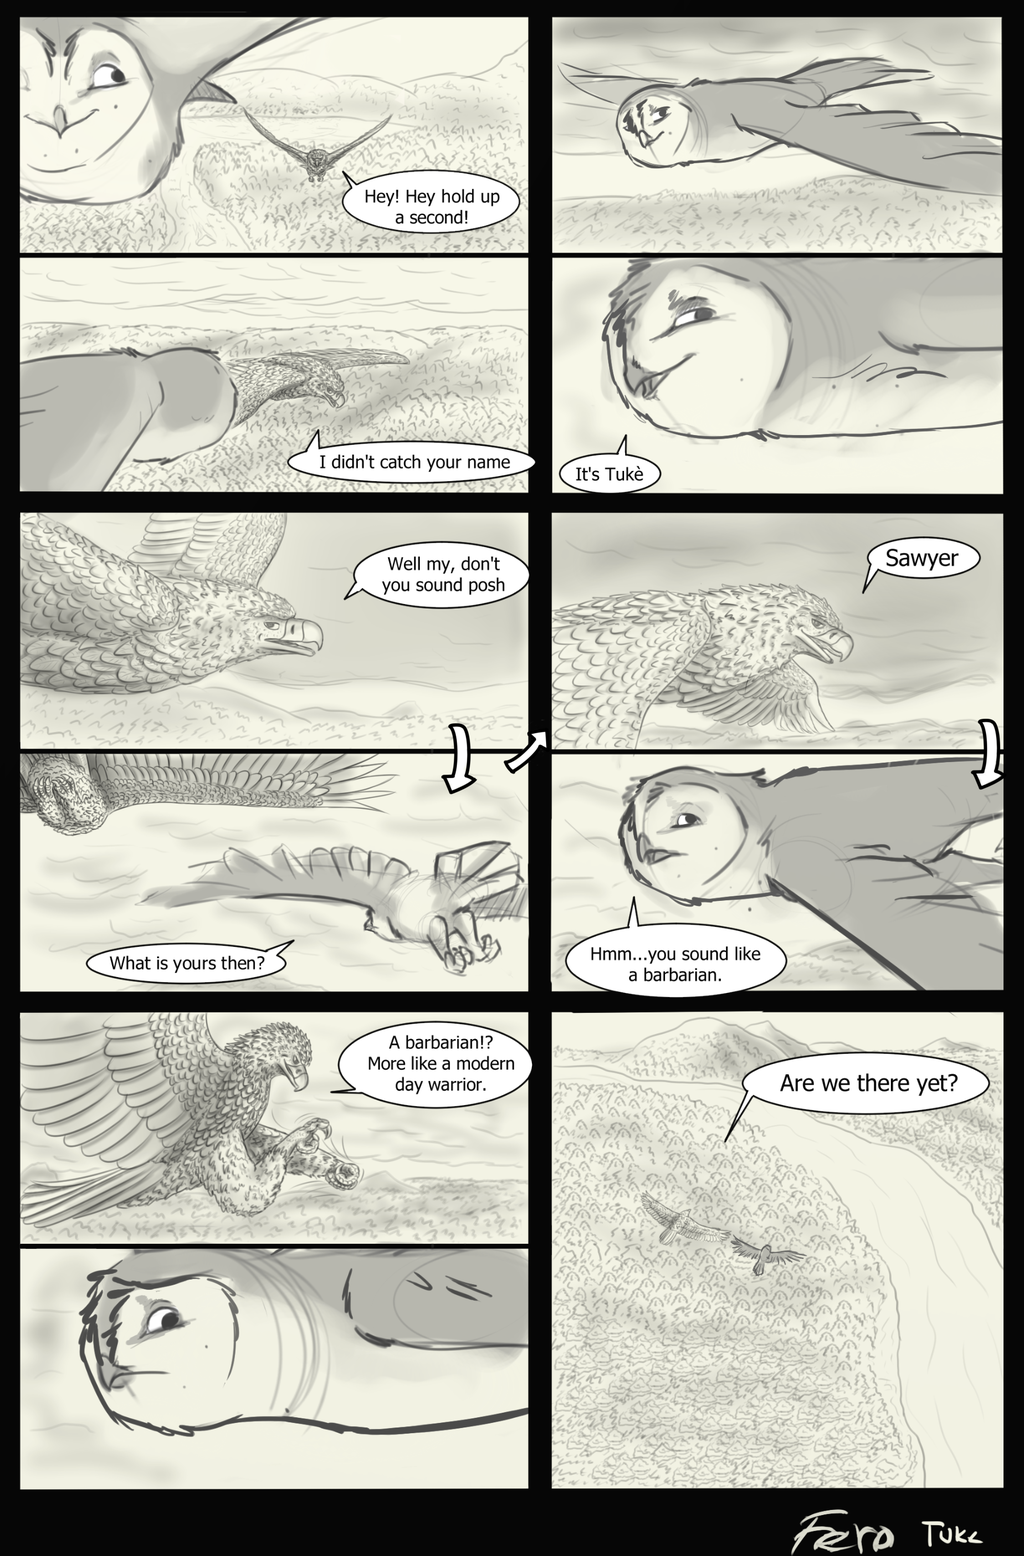 Most recent image: The Owl's Hollow - Page 3